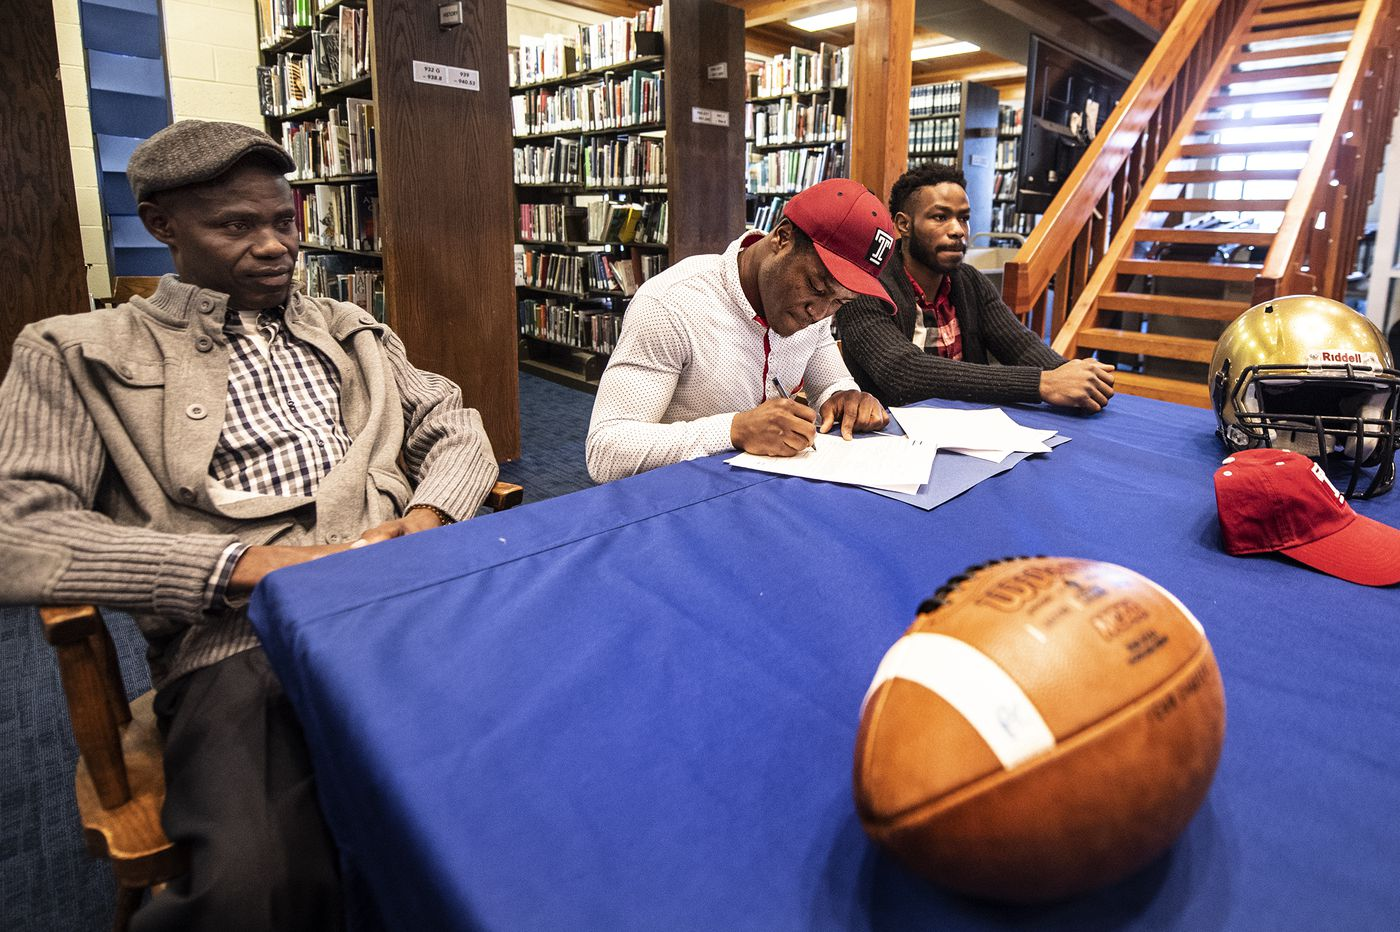 Penn Charter senior running back, Edward Saydee's journey began in Liberia and will continue at Temple